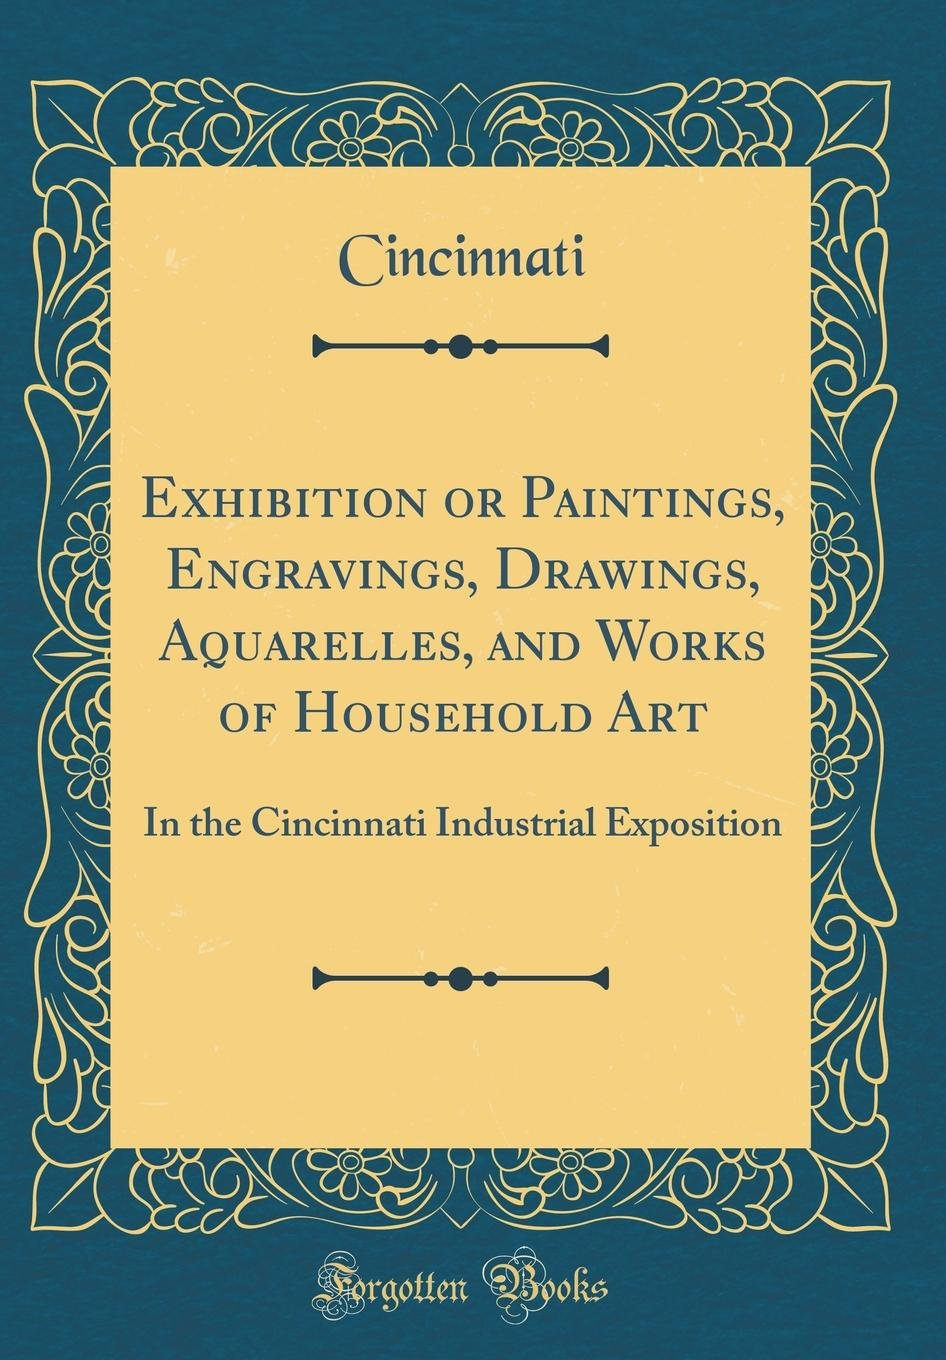 Exhibition or Paintings, Engravings, Drawings, Aquarelles, and Works of Household Art: In the Cincinnati Industrial Exposition (Classic Reprint) pdf epub